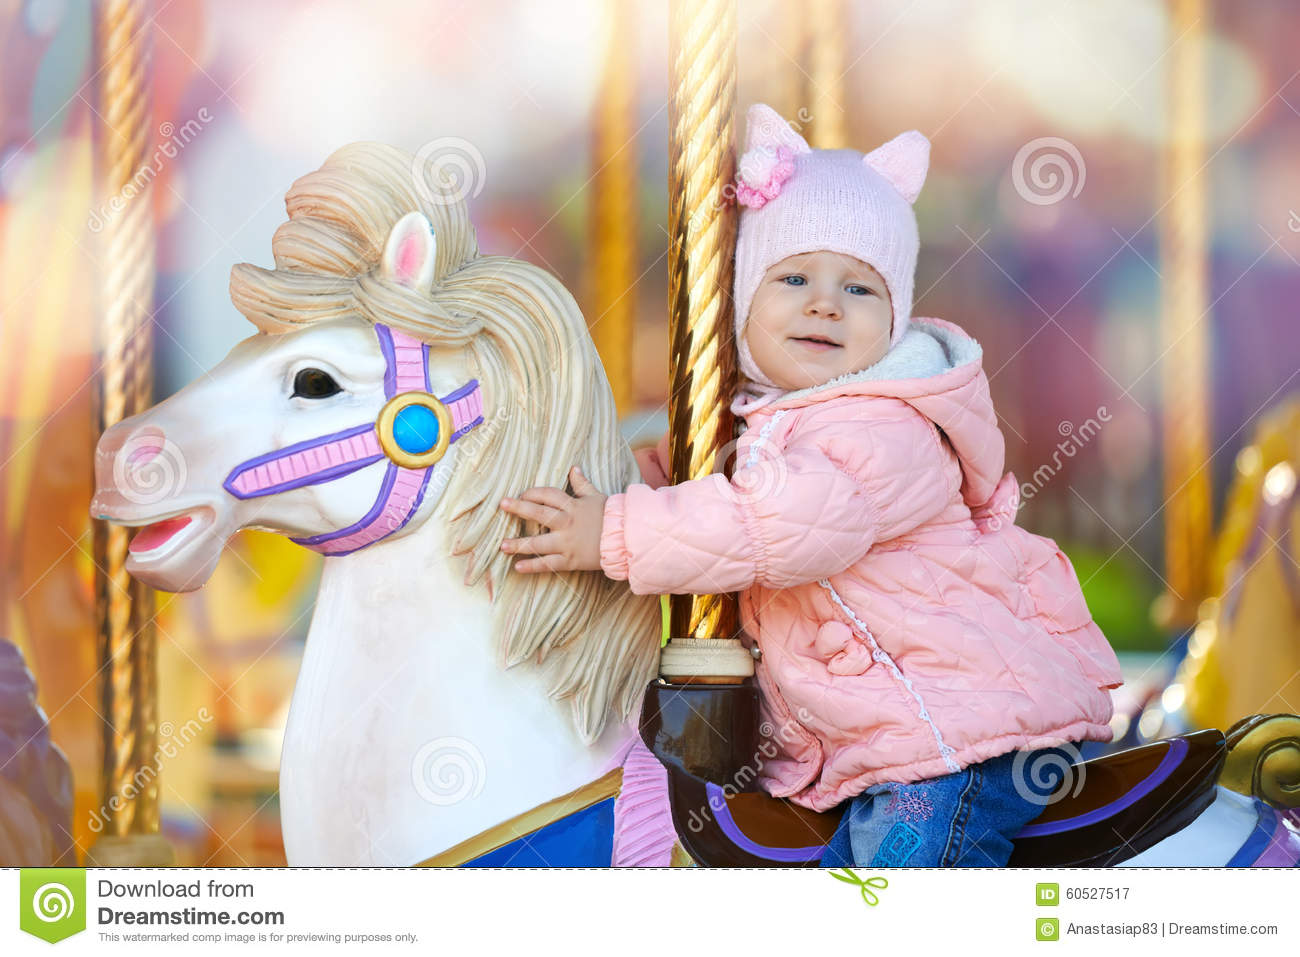 Cute happy child riding the horse on the colorful merry go round